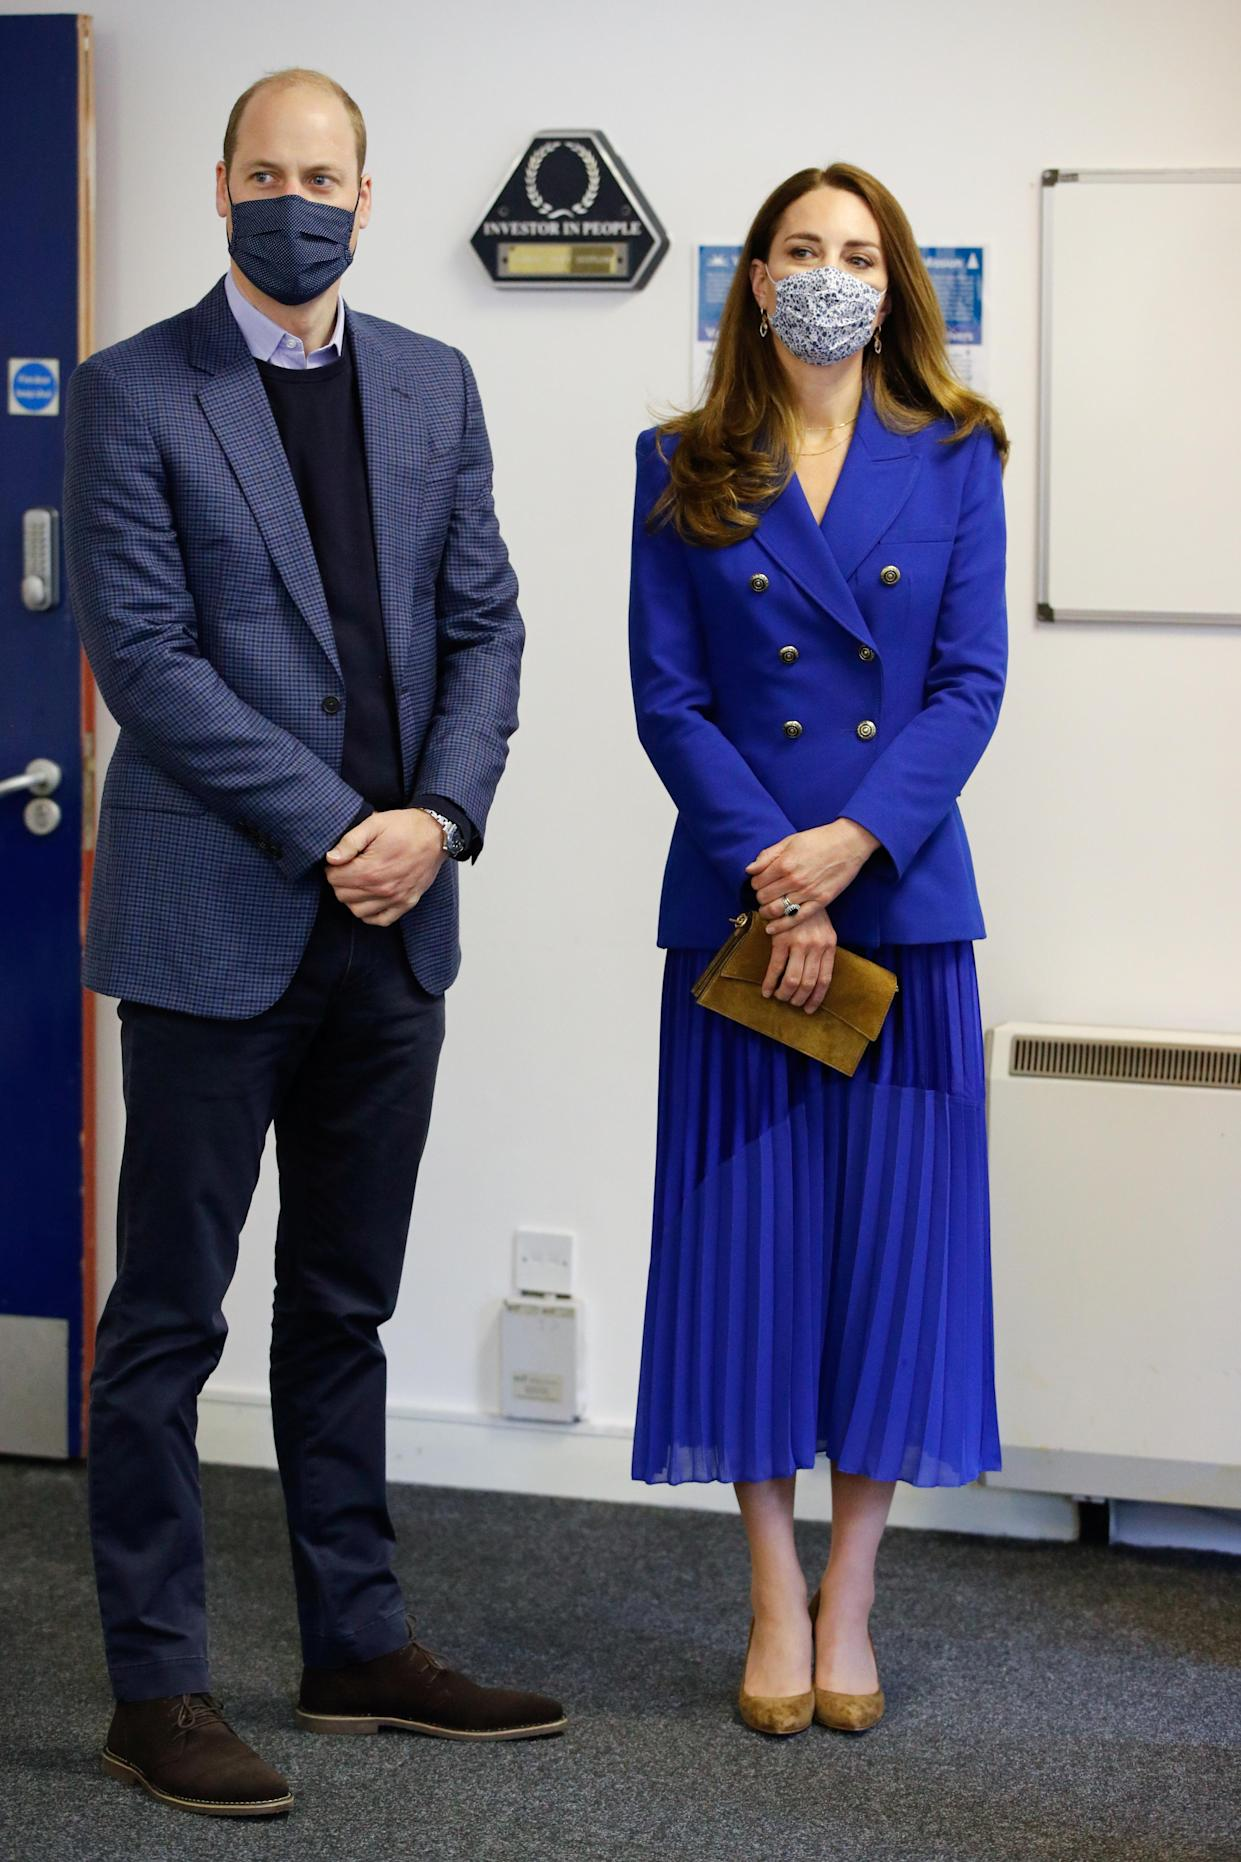 The Duke and Duchess of Cambridge visit Turning Point Scotland's centre as part of their Scottish royal tour.  (Getty Images)